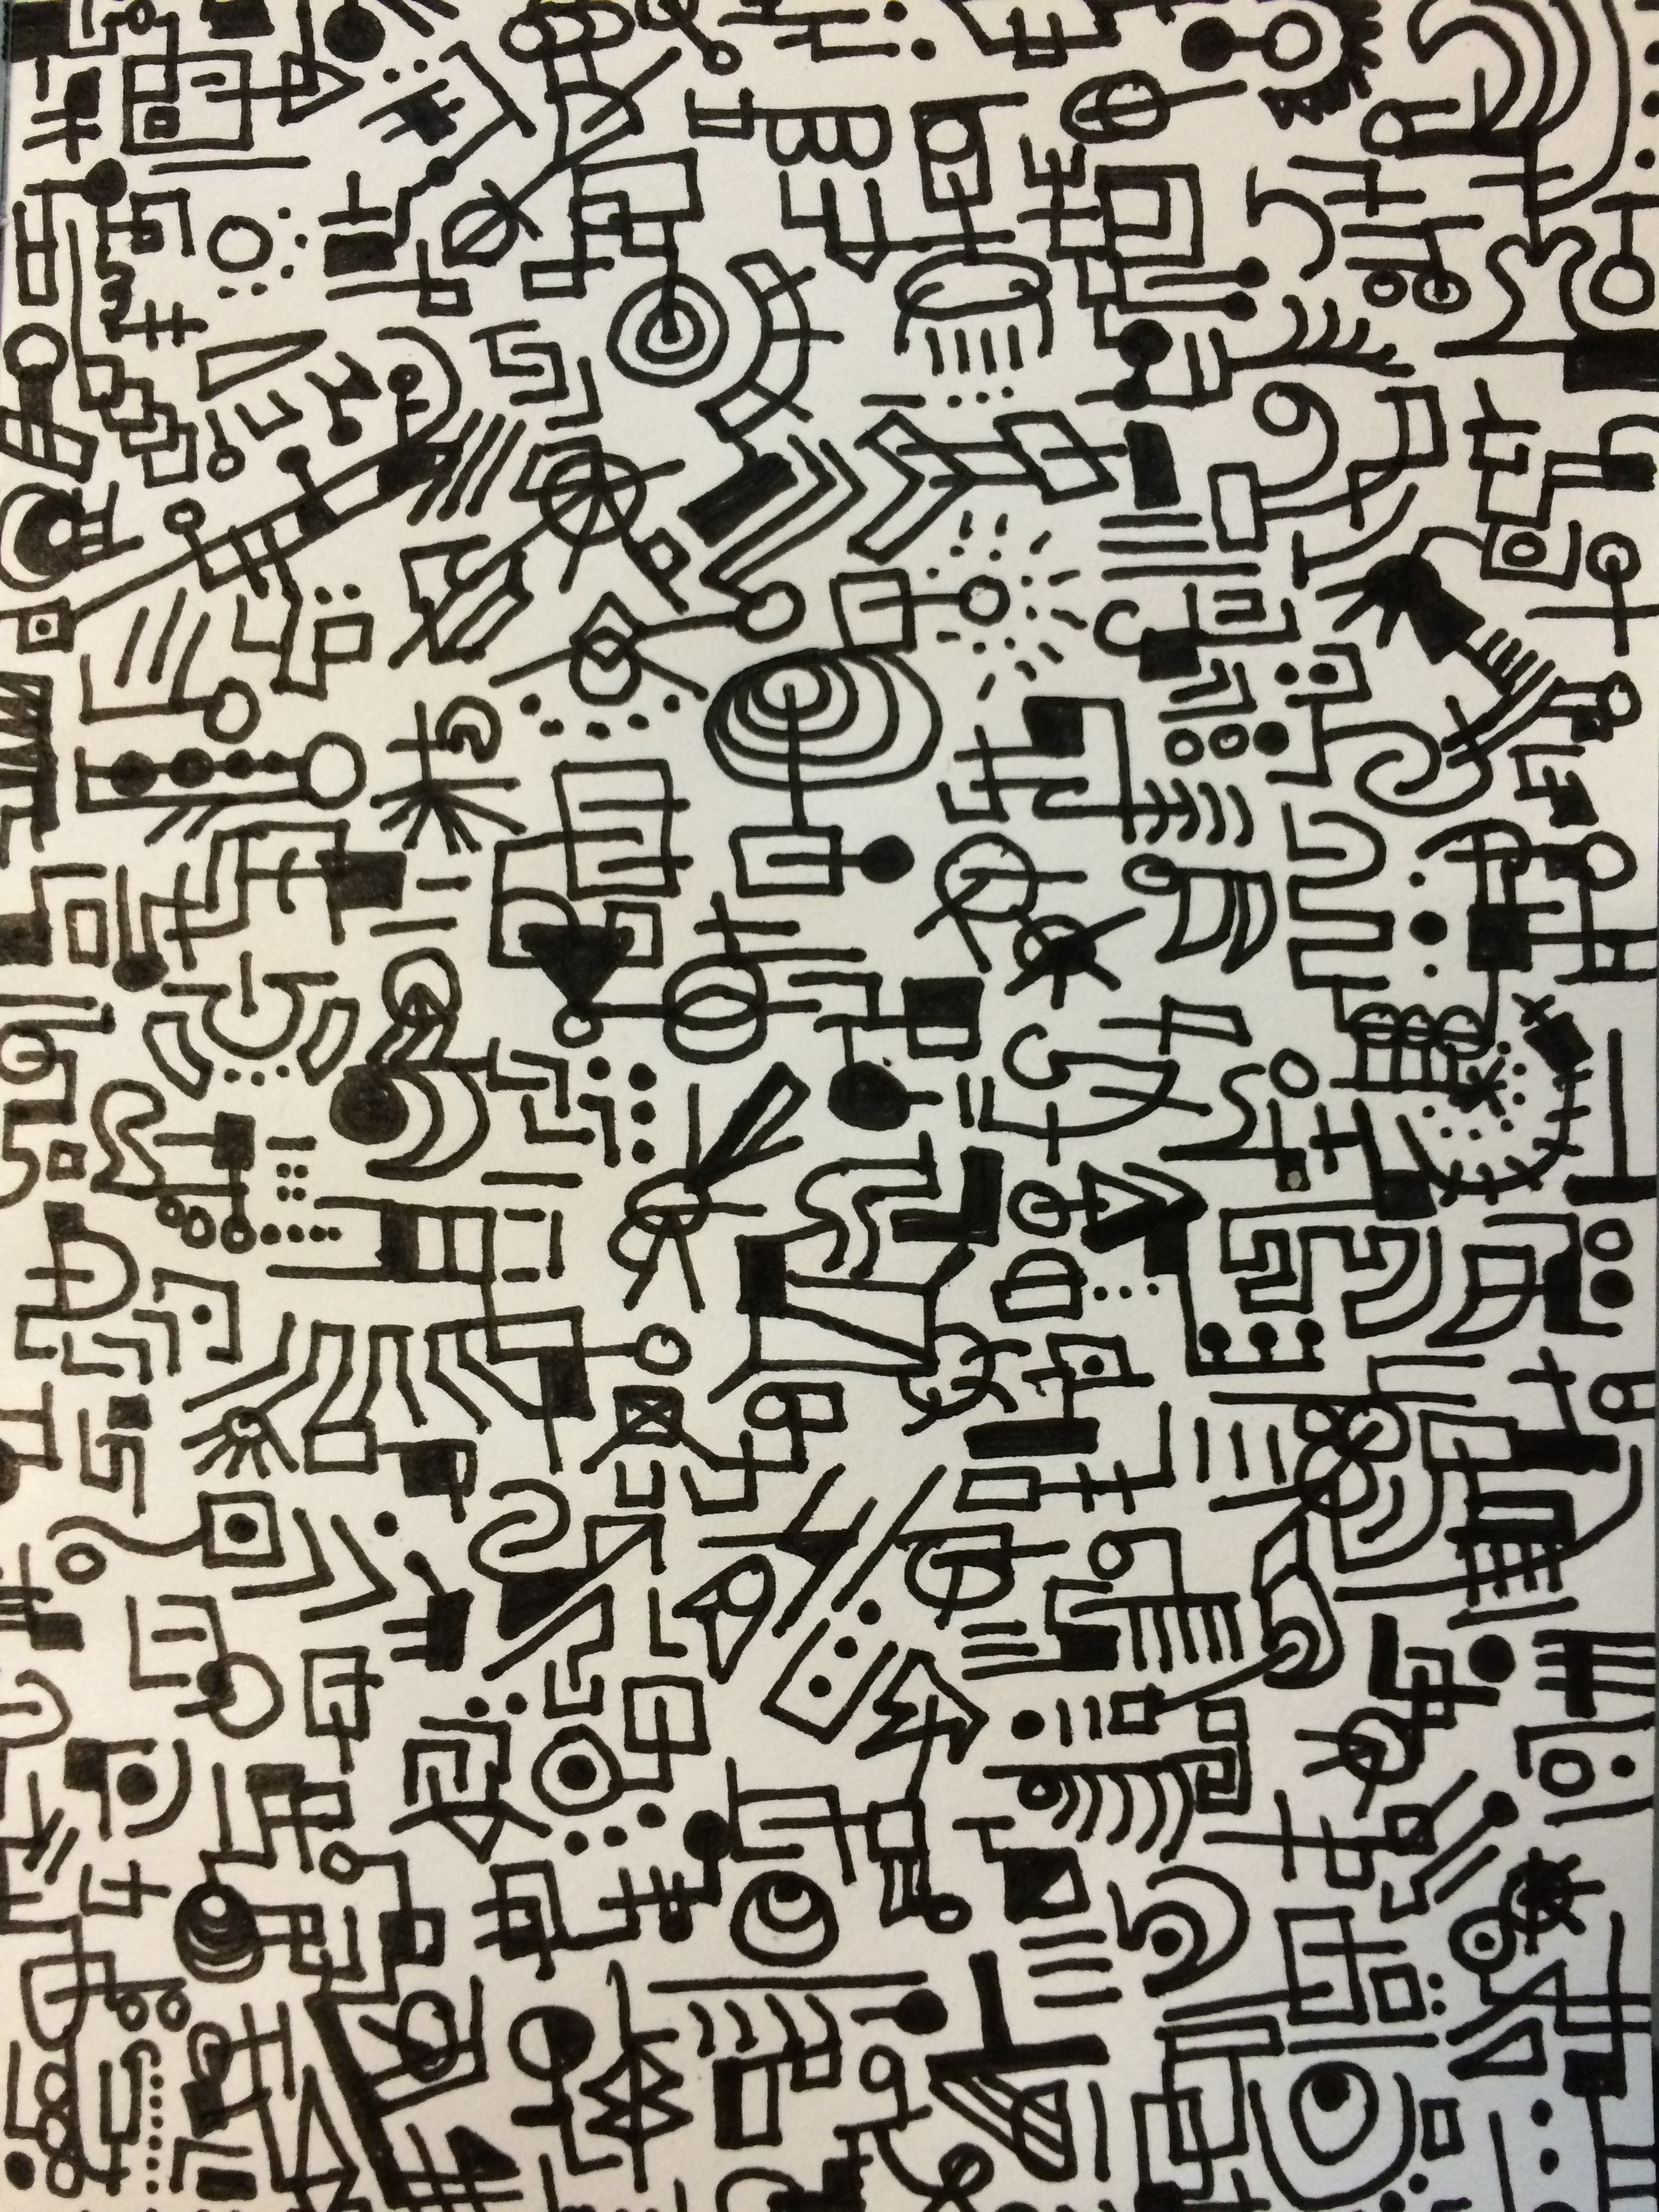 facts about doodling